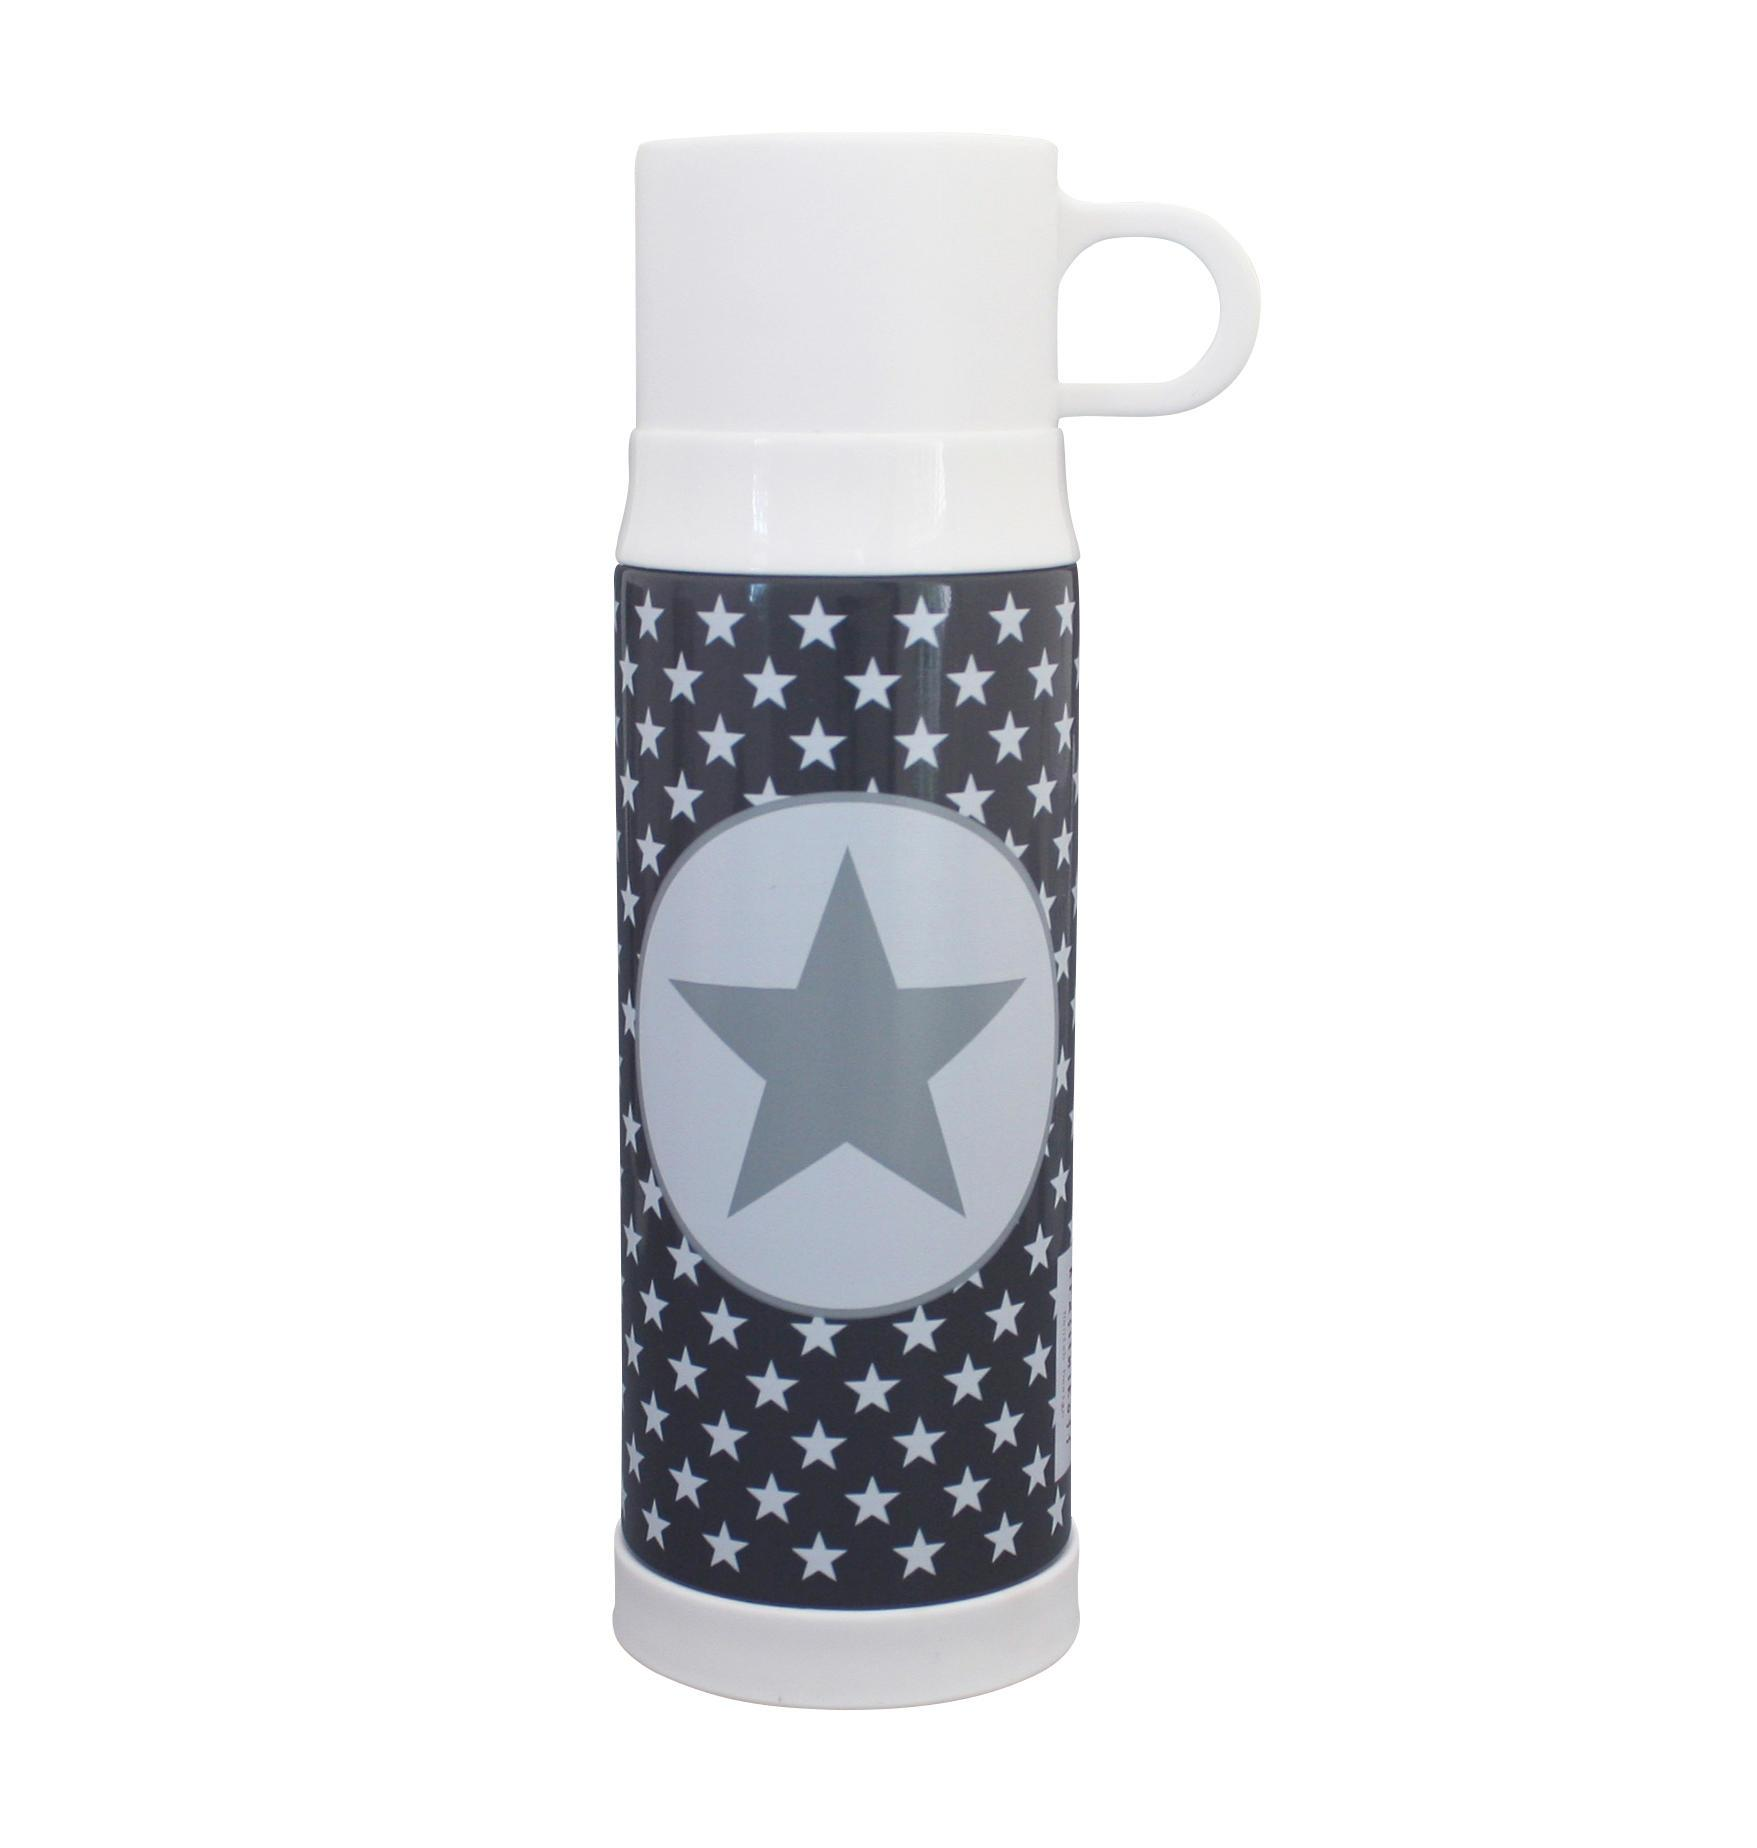 Krasilnikoff Termoska Grey star 500 ml